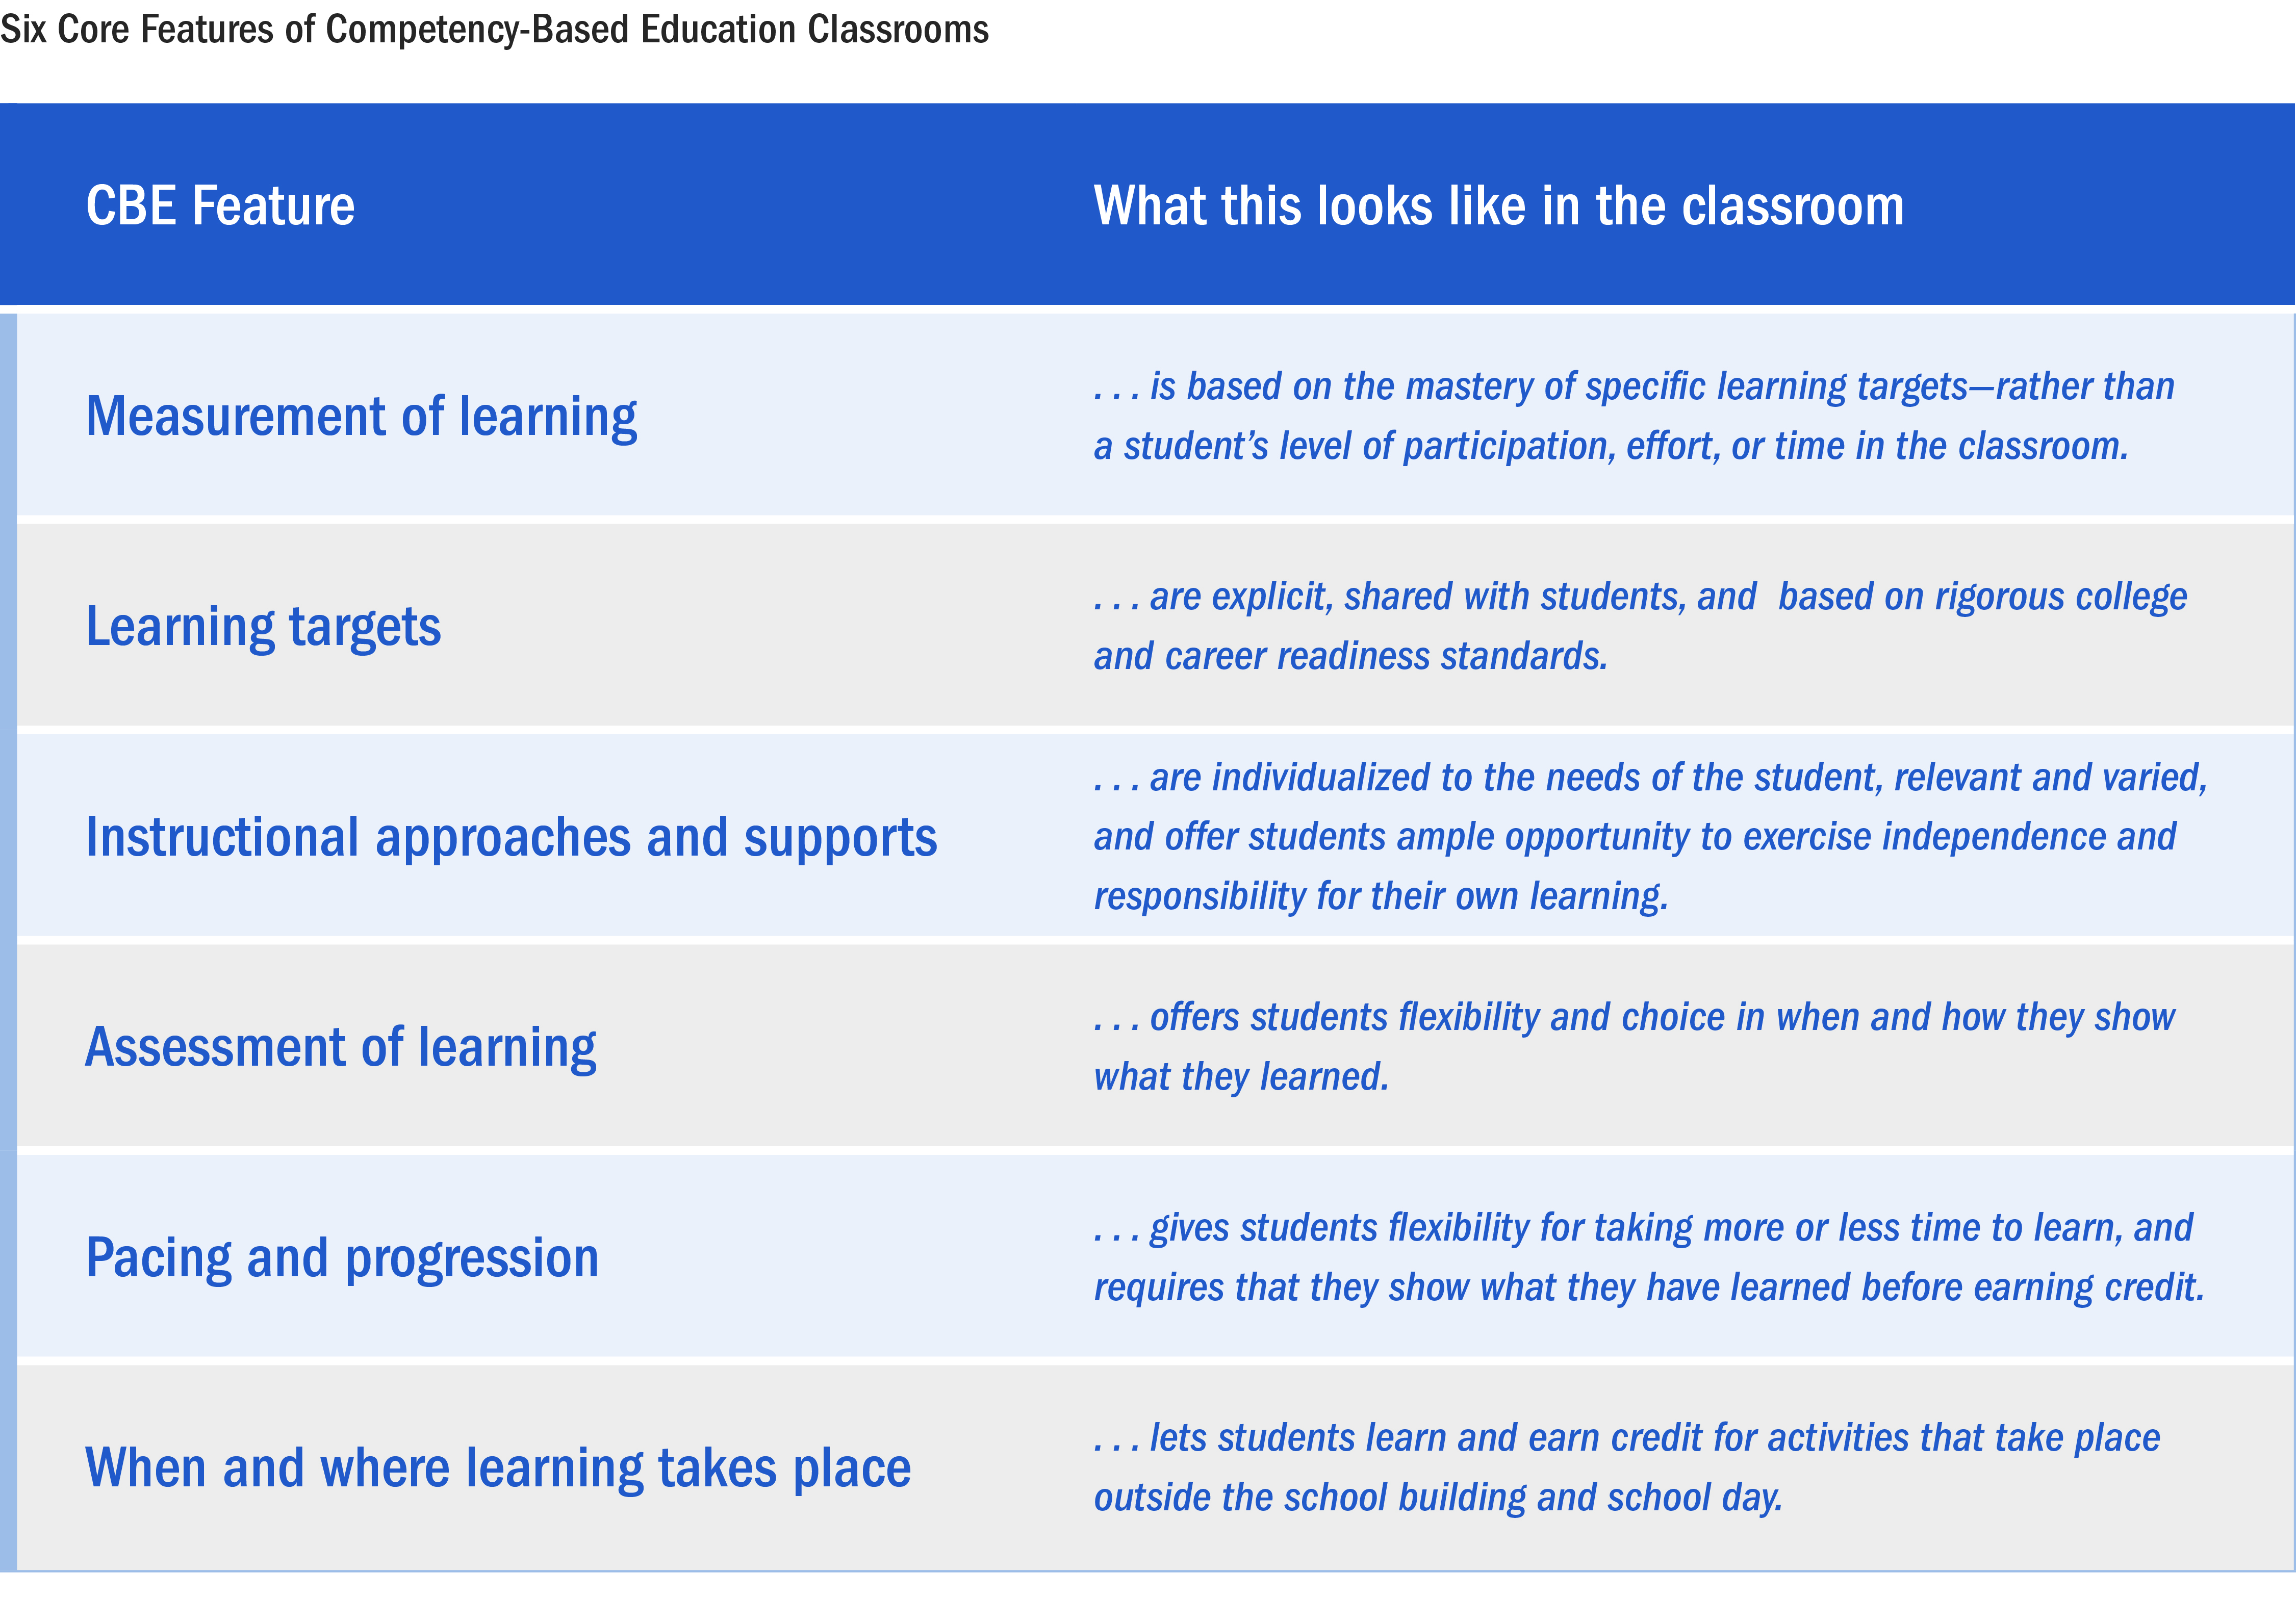 Graphic: Six Core Features of Competency-Based Education Classrooms